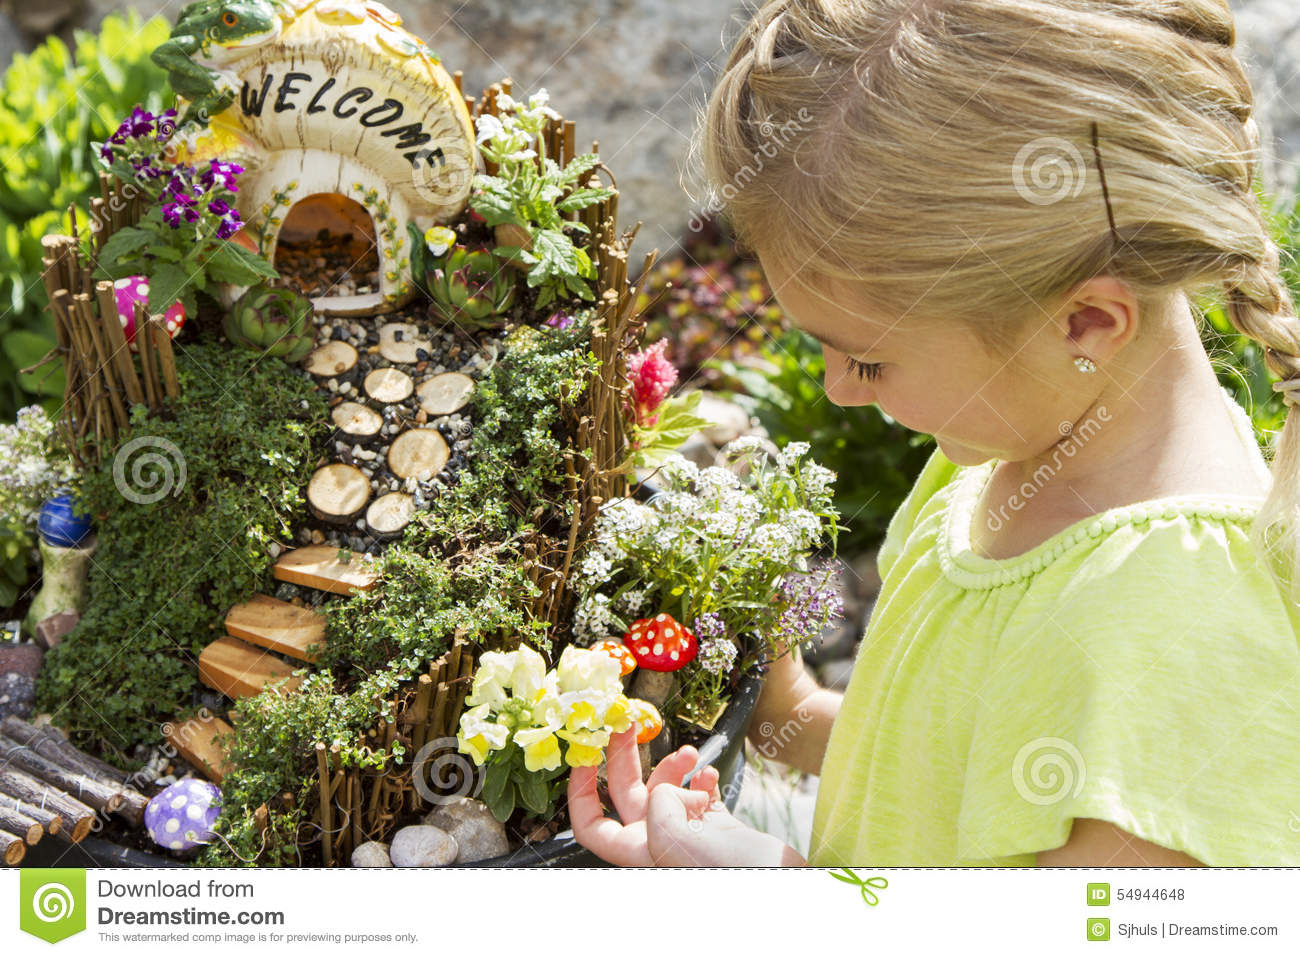 Child Looking At Fairy Garden In A Flower Pot Outdoors Stock Photo